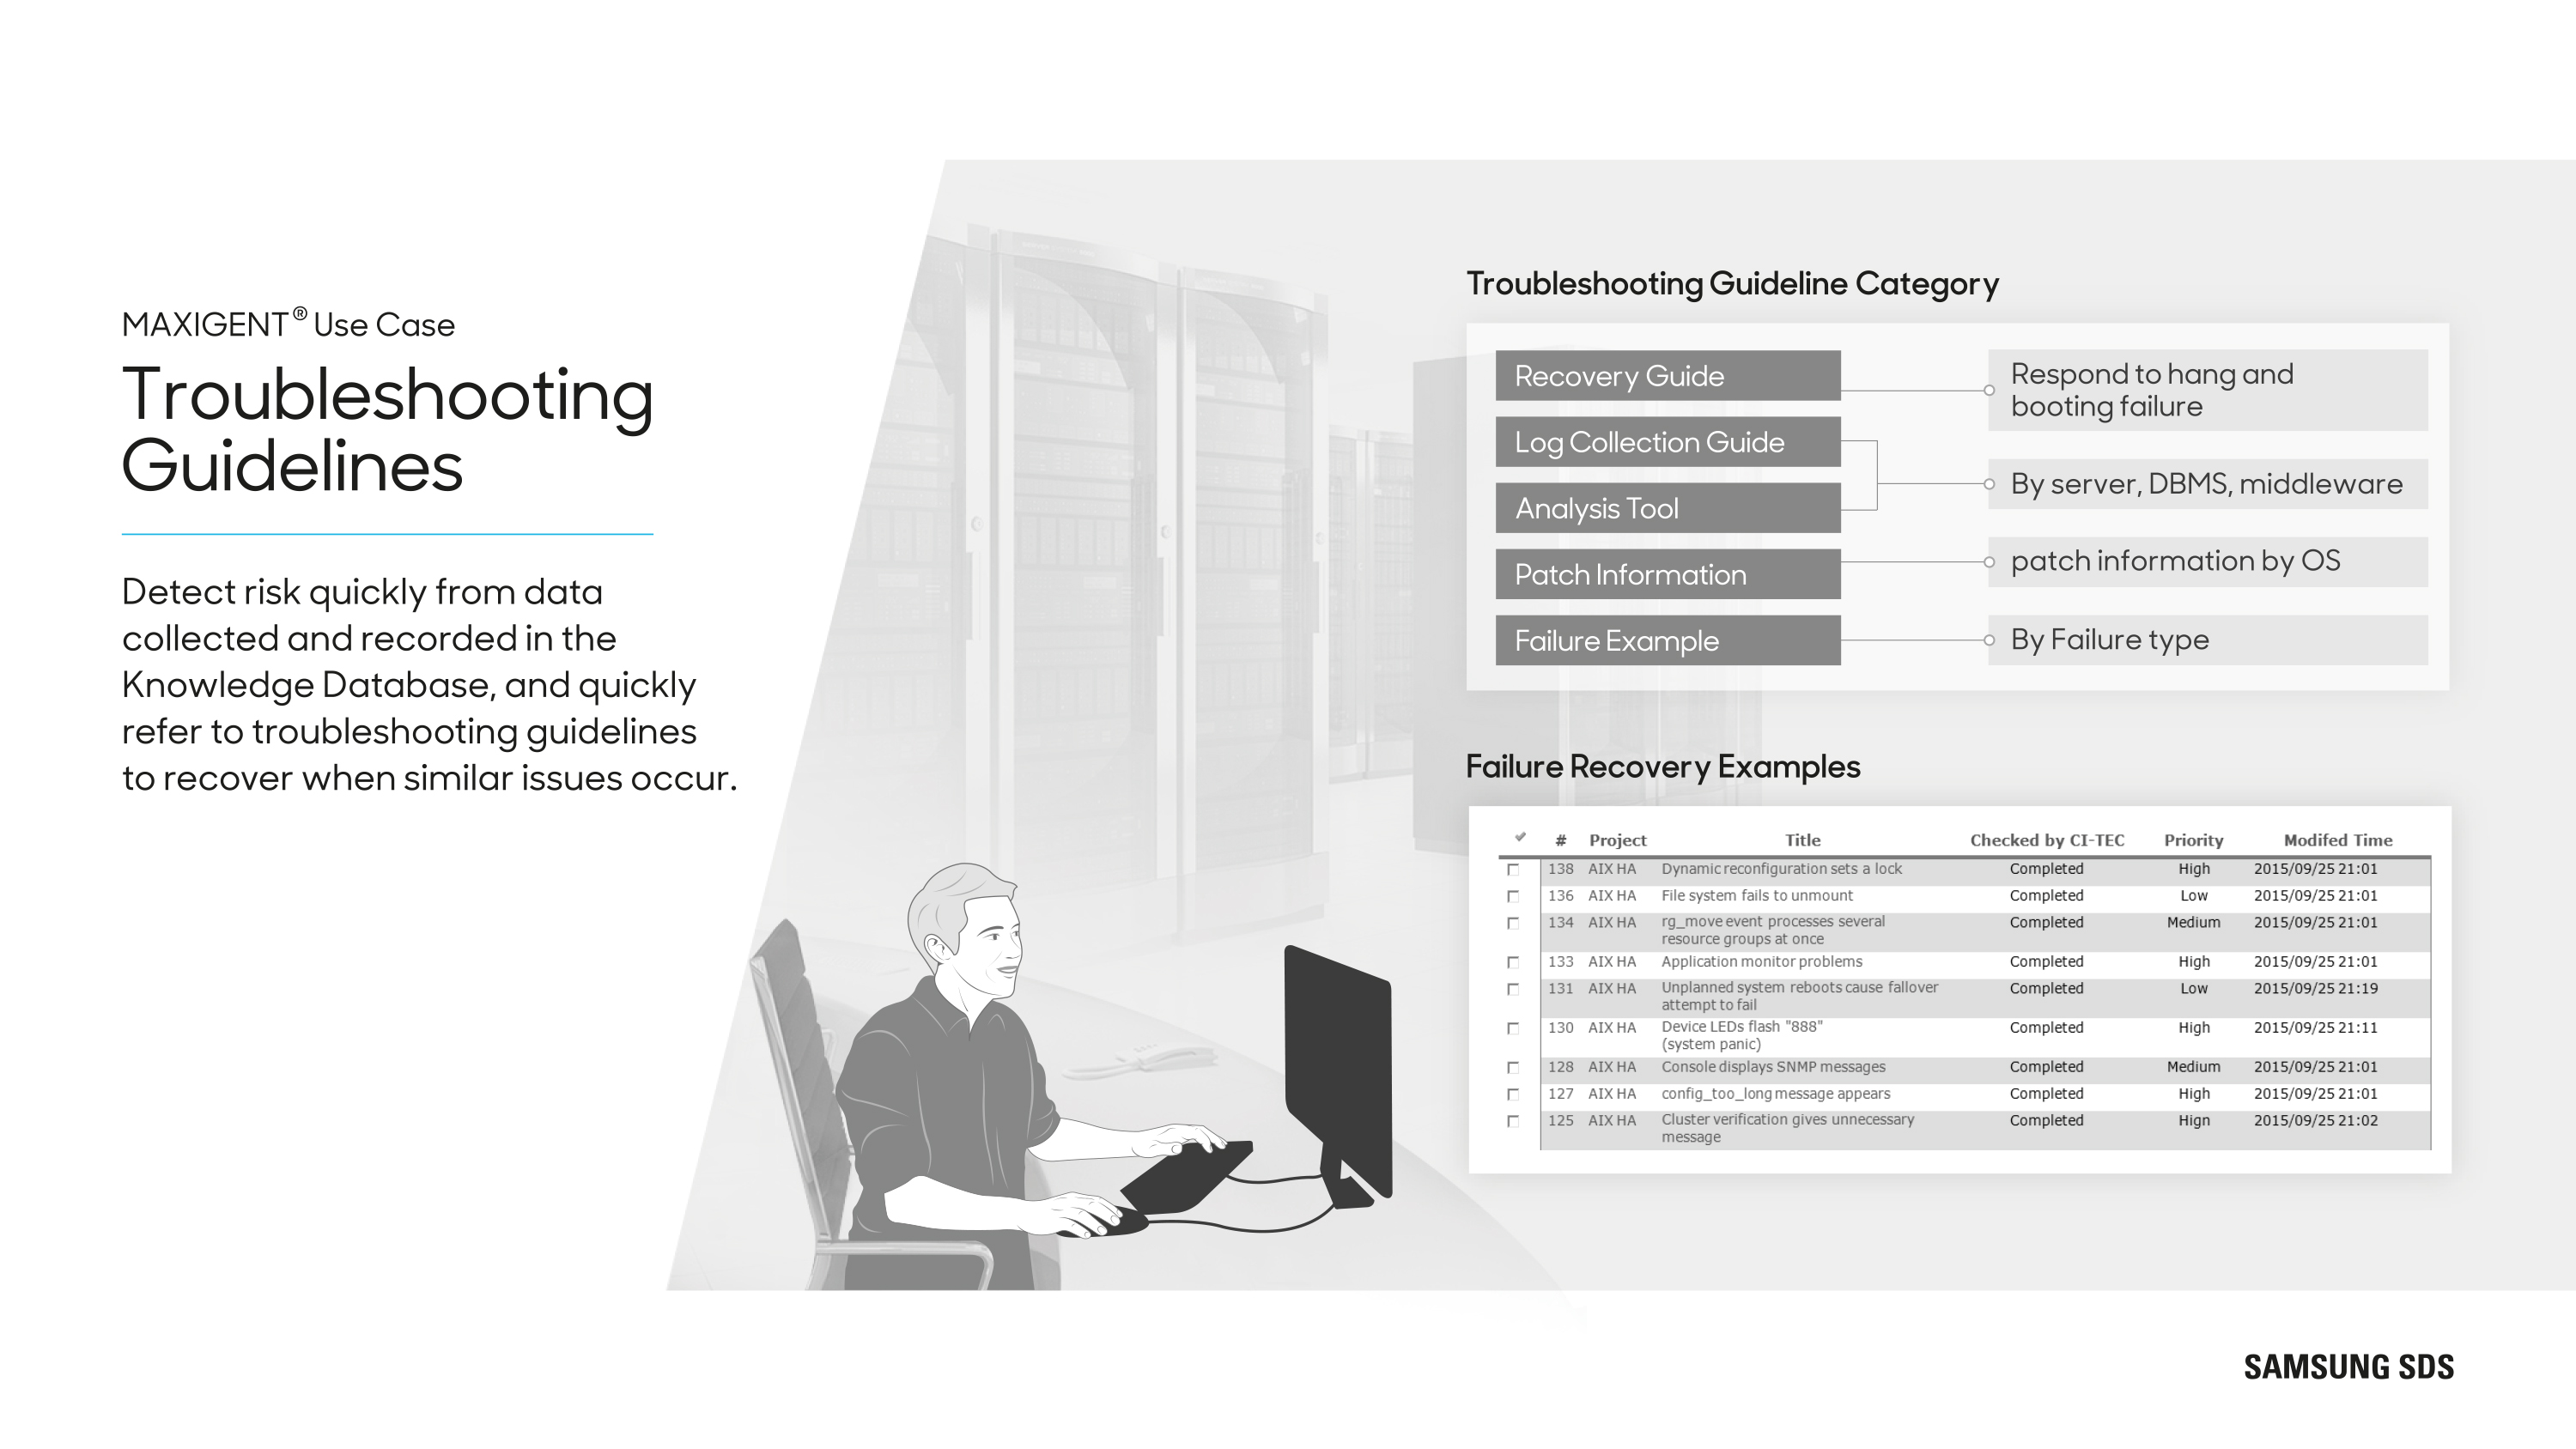 Troubleshooting guidelines Detect risk quickly from data collected and recorded in the Knowledge Database, and quickly refer to troubleshooting guidelines to recover when similar issues occur.